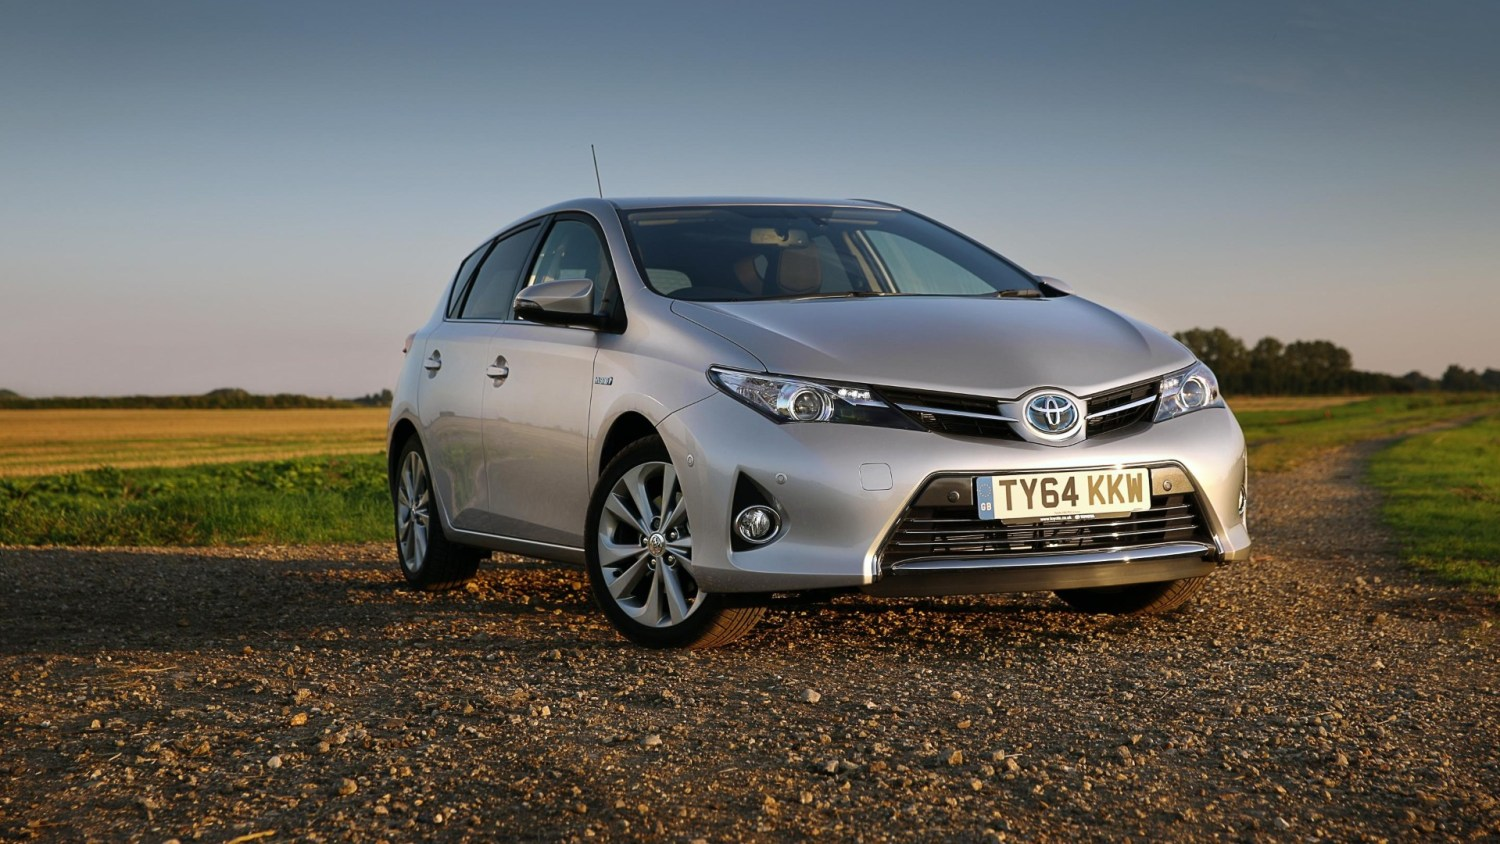 alternative fuel vehicles lead steadily growing pre-owned market